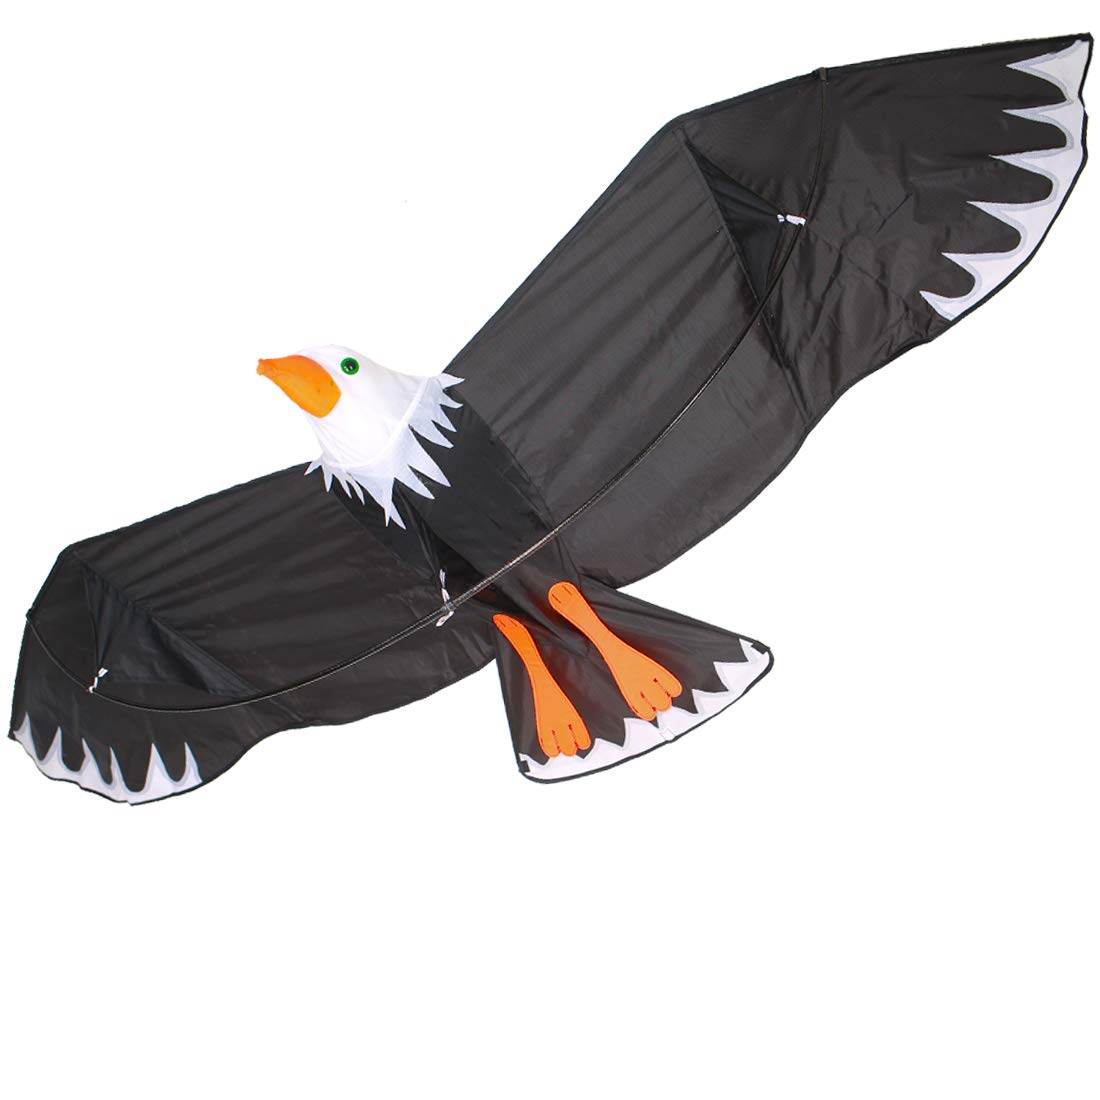 Zhuoyue Eagle Kite for Kids and Adults, Easy to Fly Bird Kite for Boys Girls for Outdoor Games Activities,Single Line Kite with Flying Tools by Zhuoyue